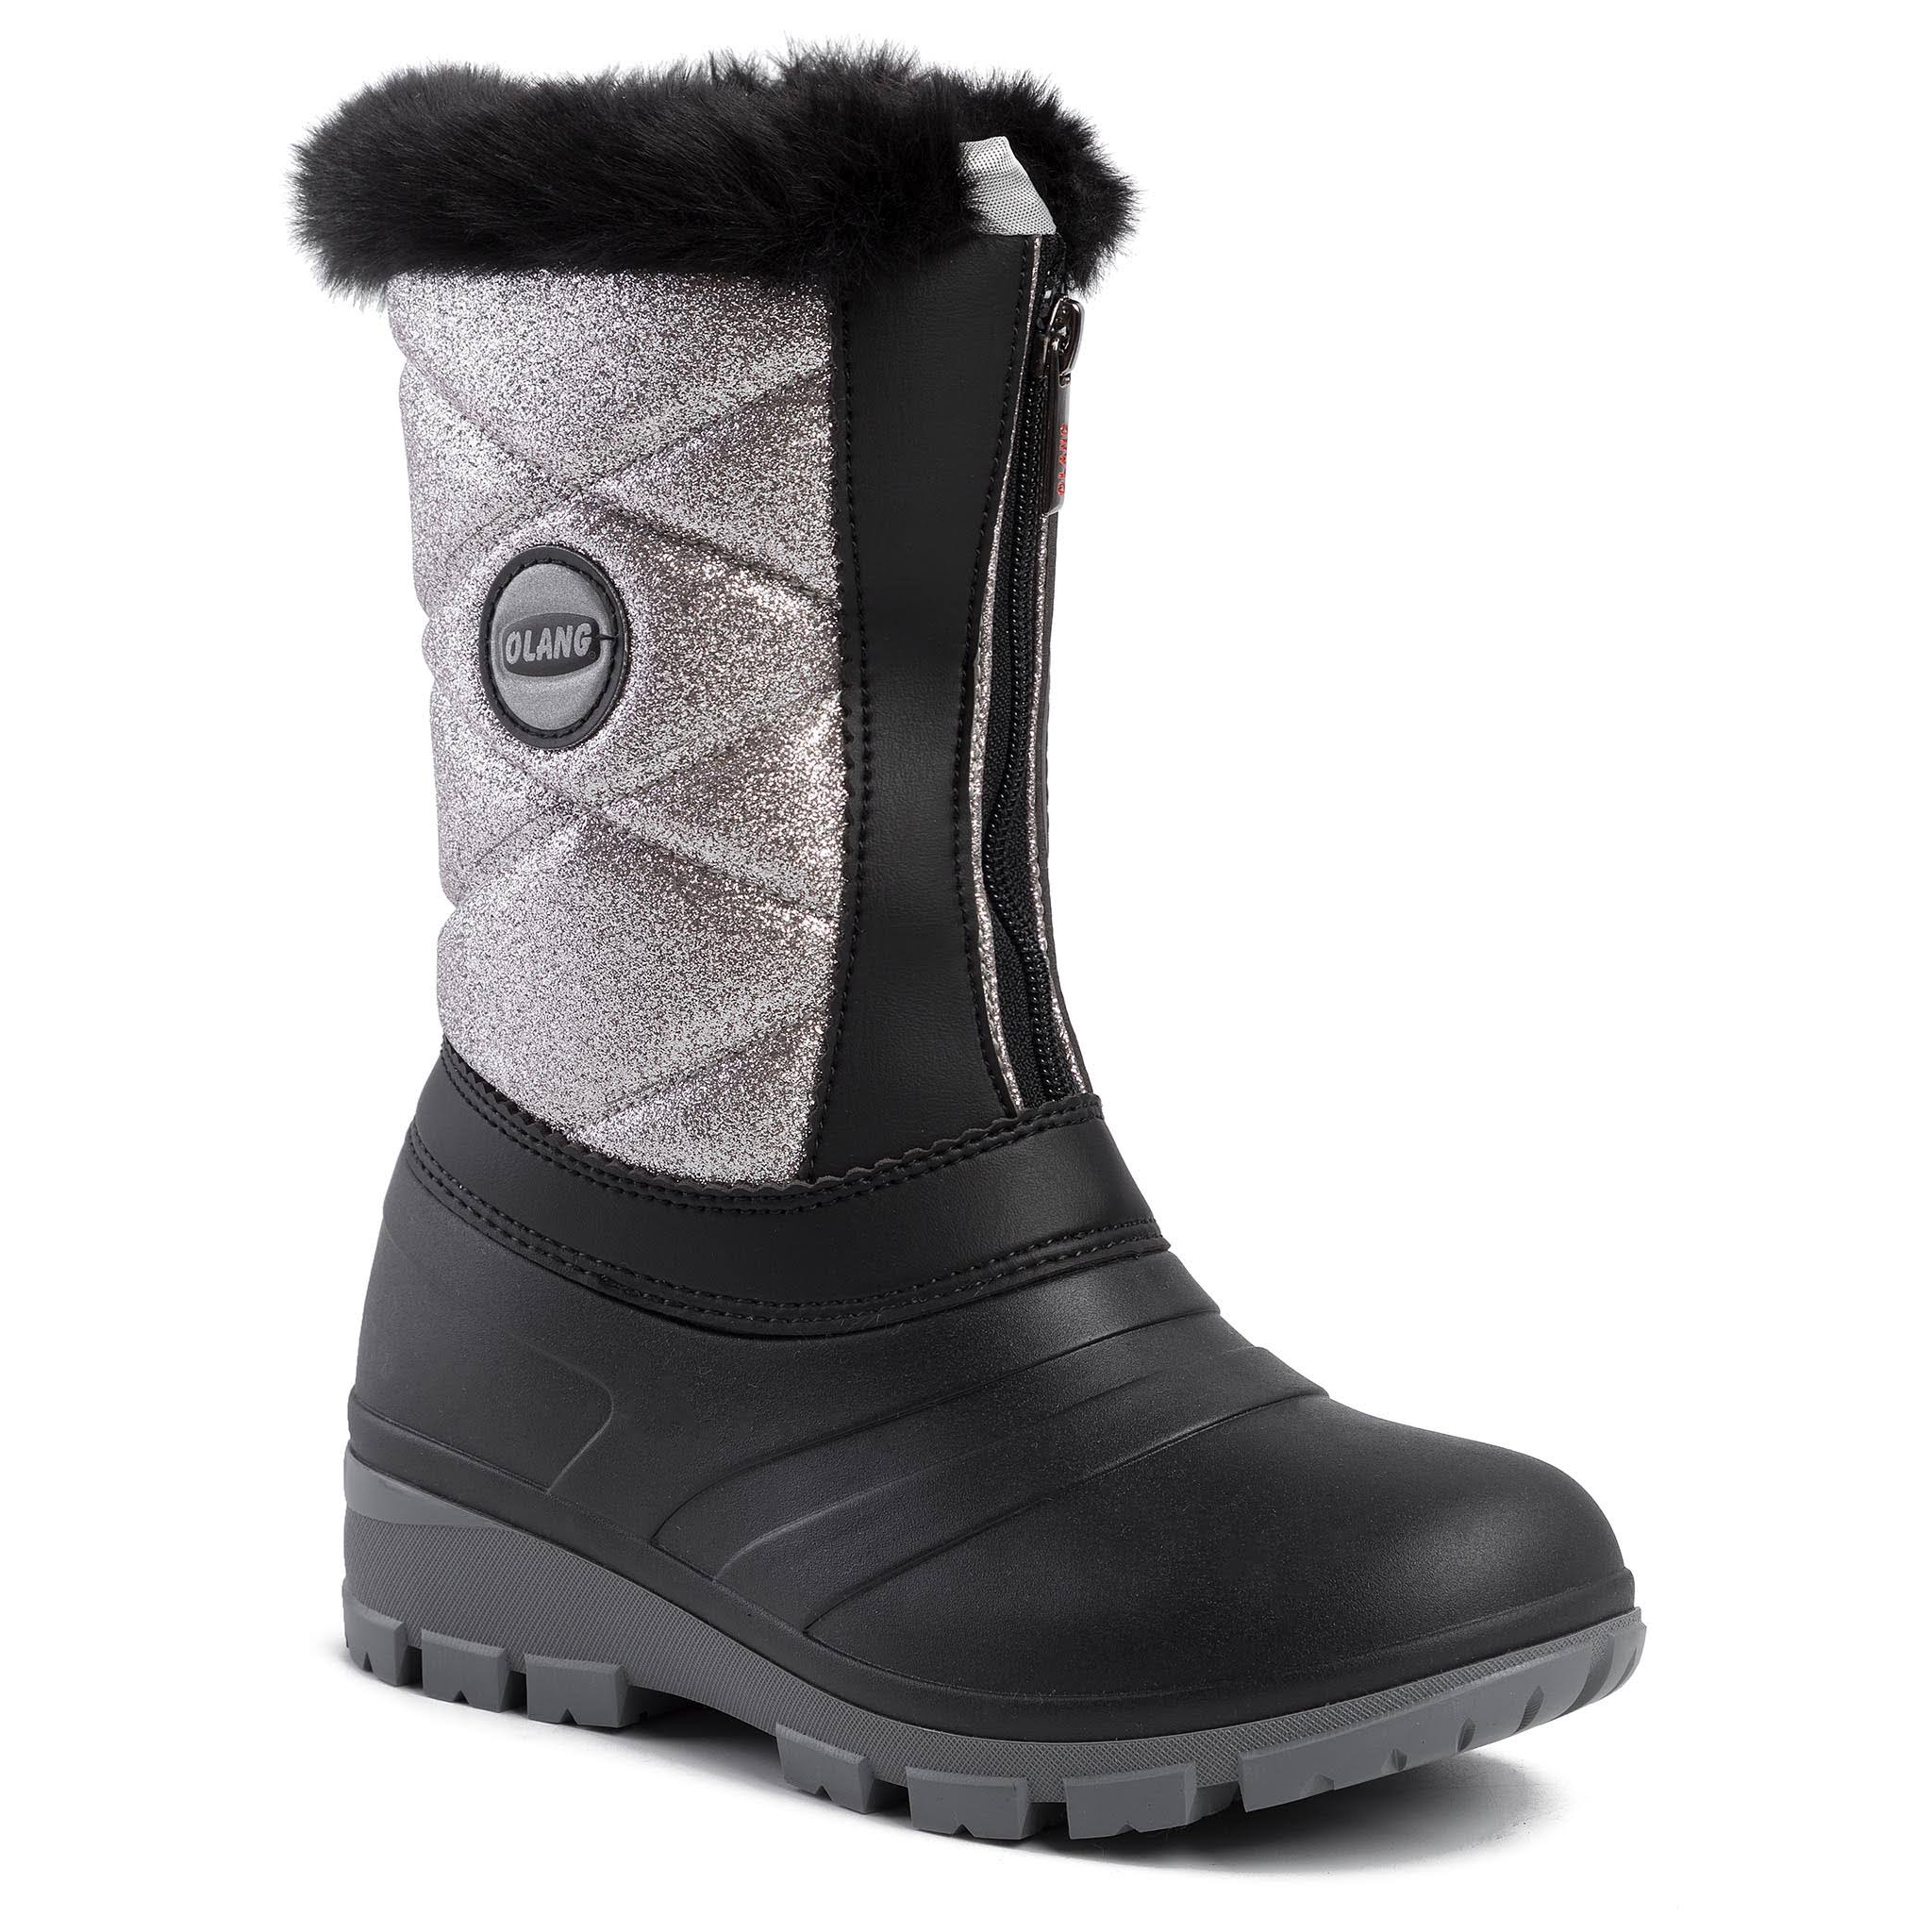 Olang Nancy Kid Lux Boot Silver 2019 39-40 / UK 5.5-6.5